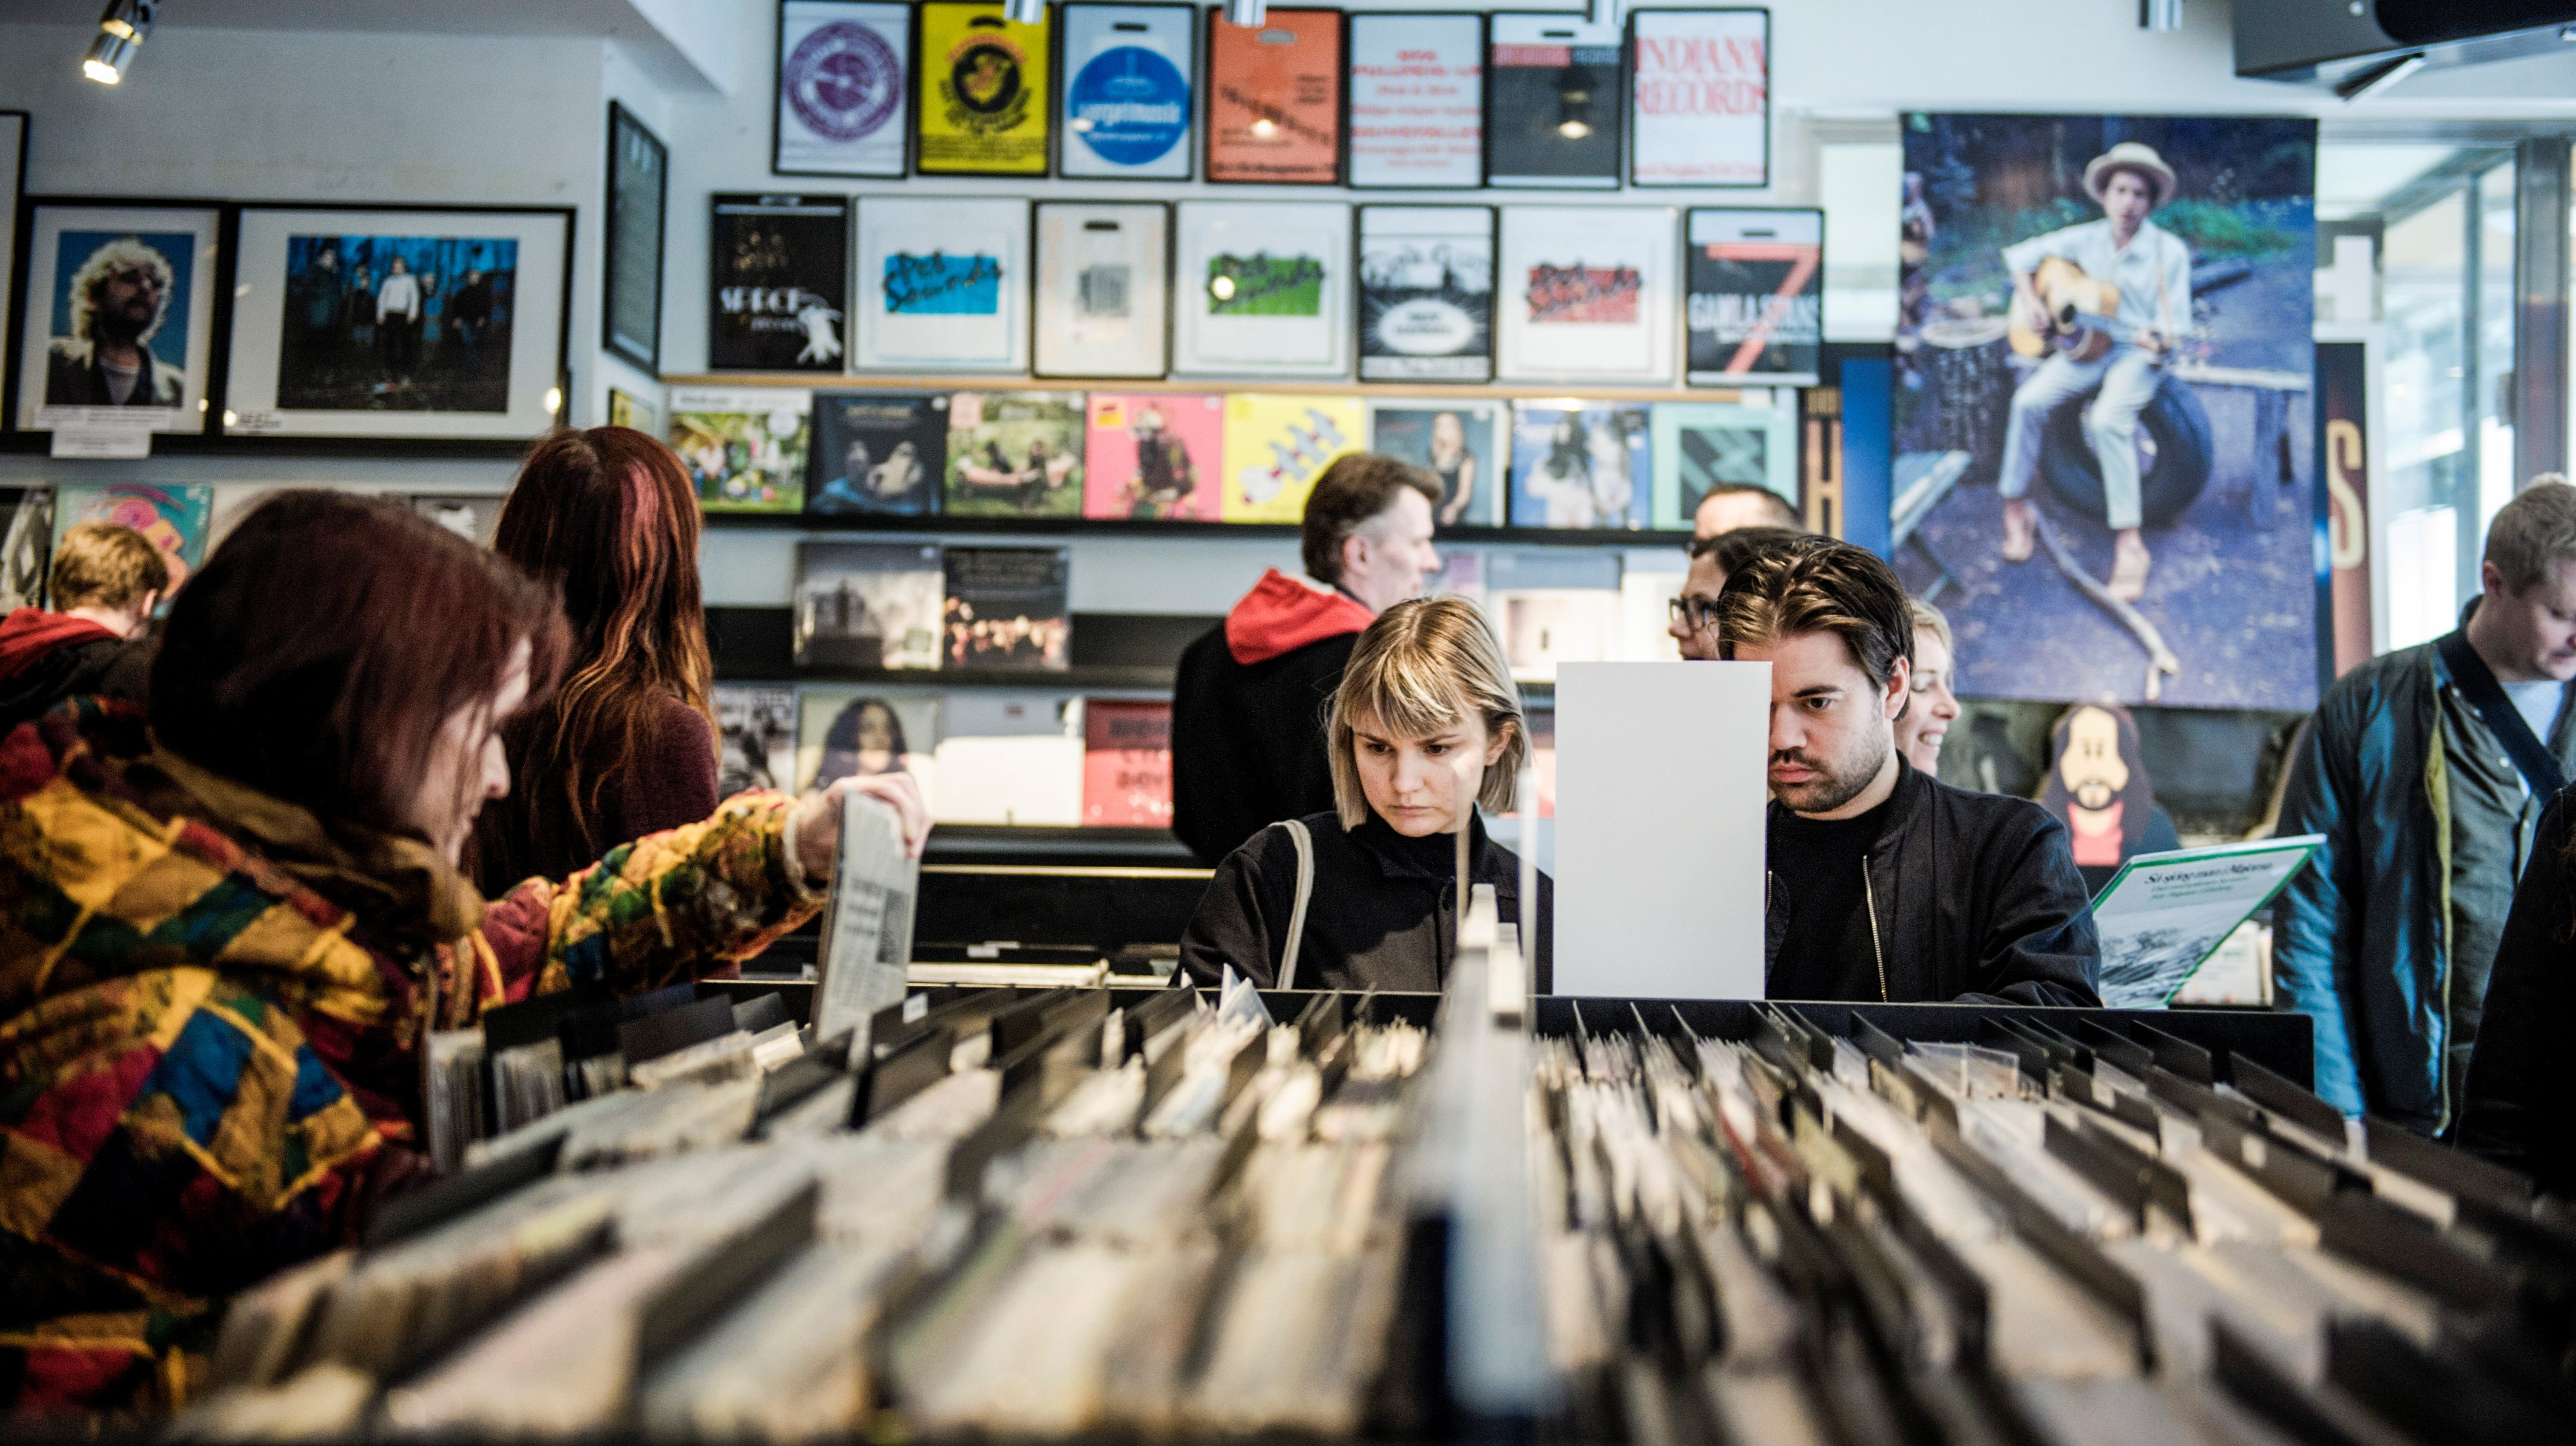 Customers sift through albums in a record store during the international Record Store Day in Stockholm